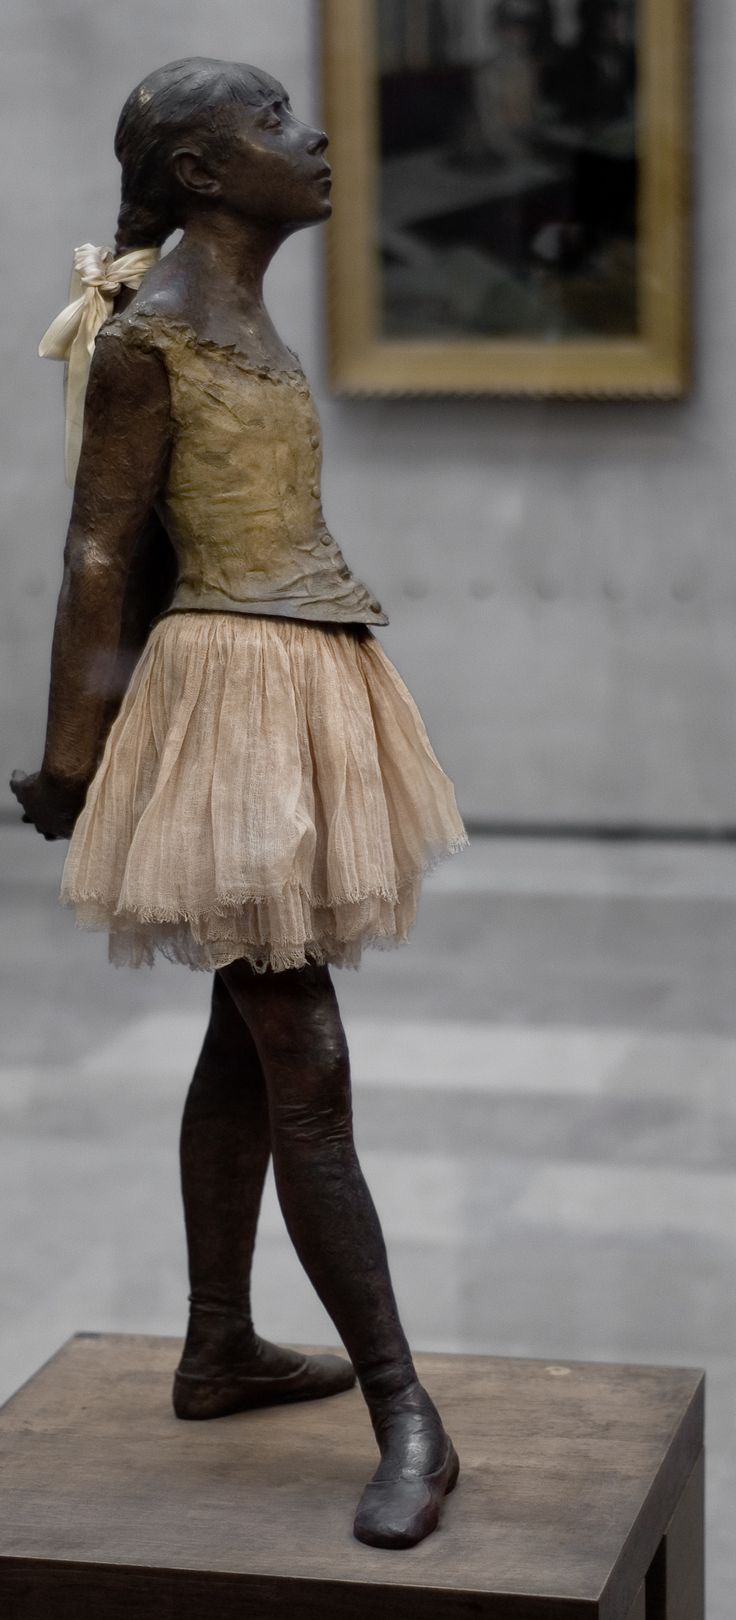 Little Ballerina (1881) - Edgar Degas: Sculpture, Paris, Impressionist Paintings, Little Ballerinas, Real Life, Dancers, Art Museums, Edgar Degas, Muse D Orsay